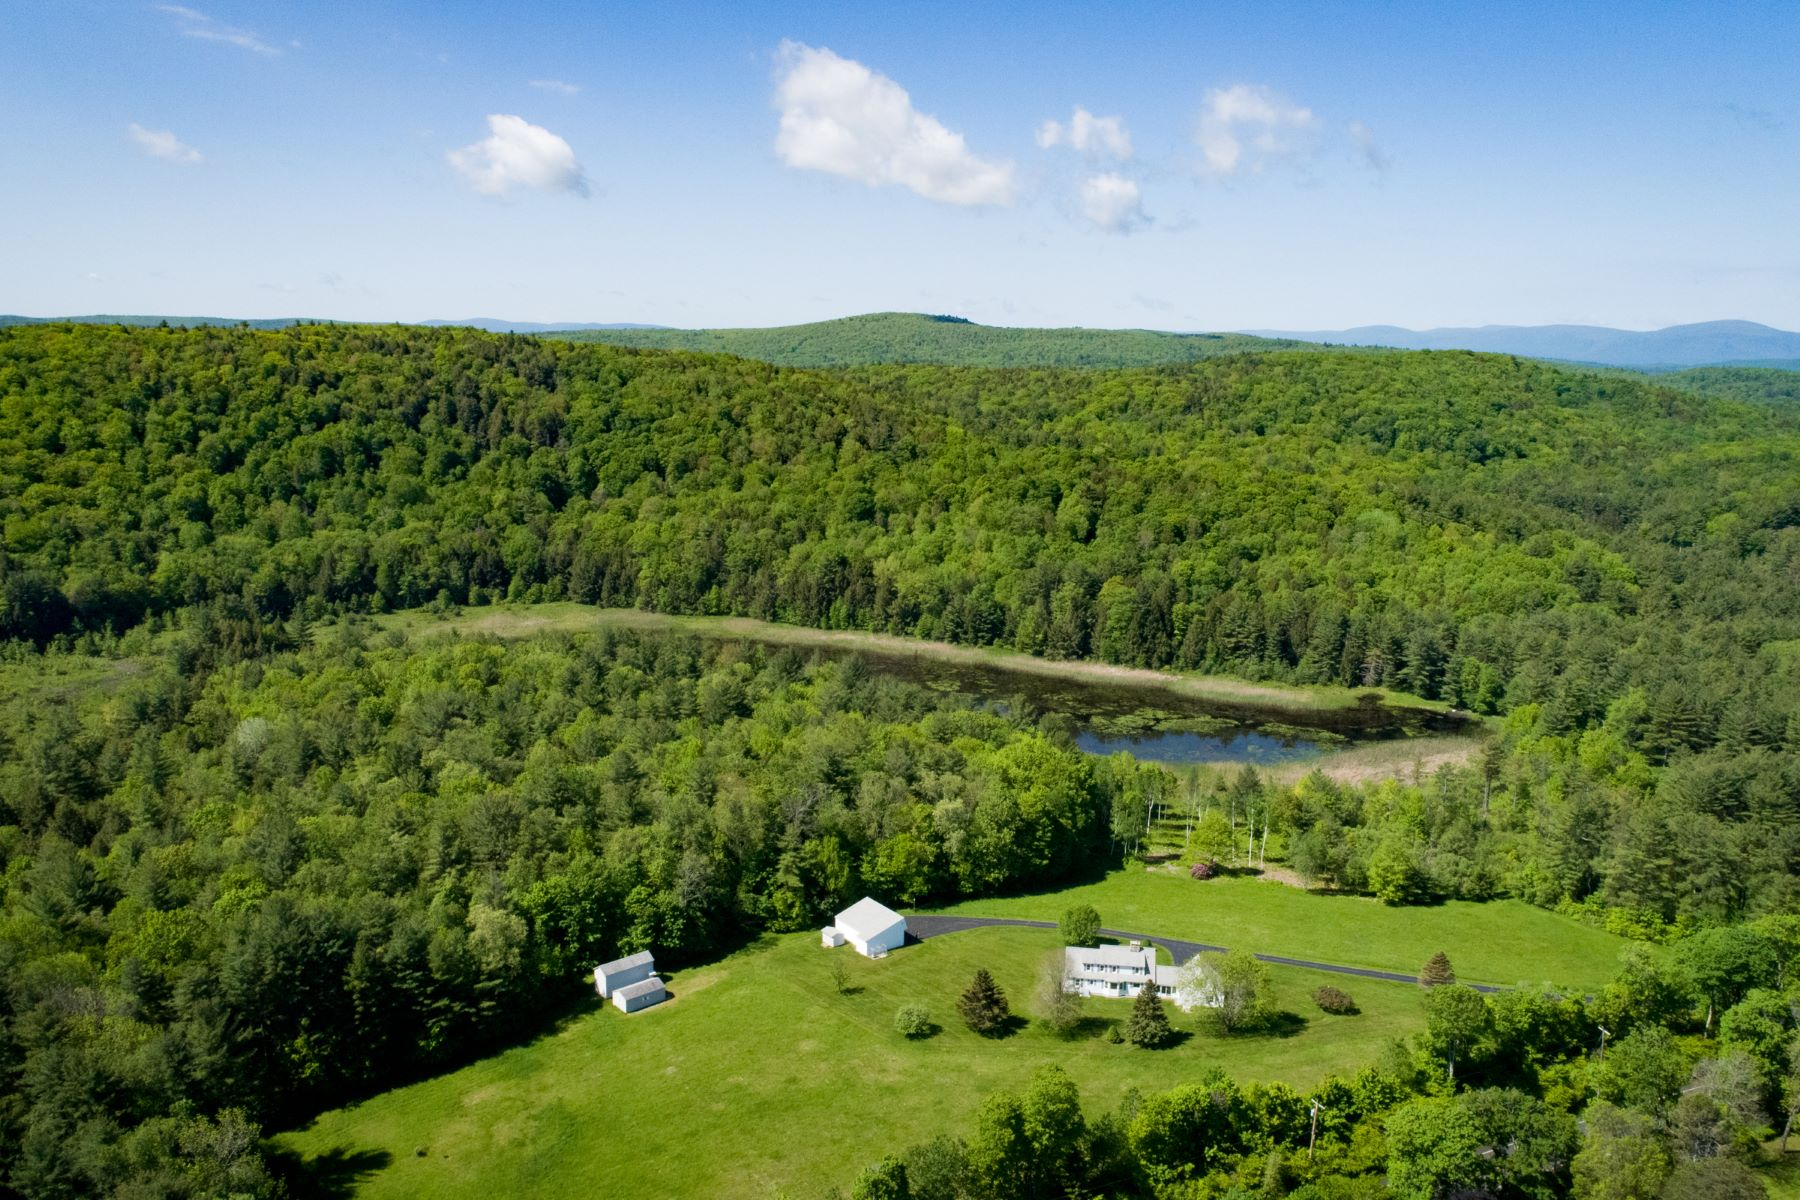 Casa Unifamiliar por un Venta en Outstanding 140+ Acre Property, with Picturesque 2,379 SF Cape 540 Main Rd, Monterey, Massachusetts, 01245 Estados Unidos